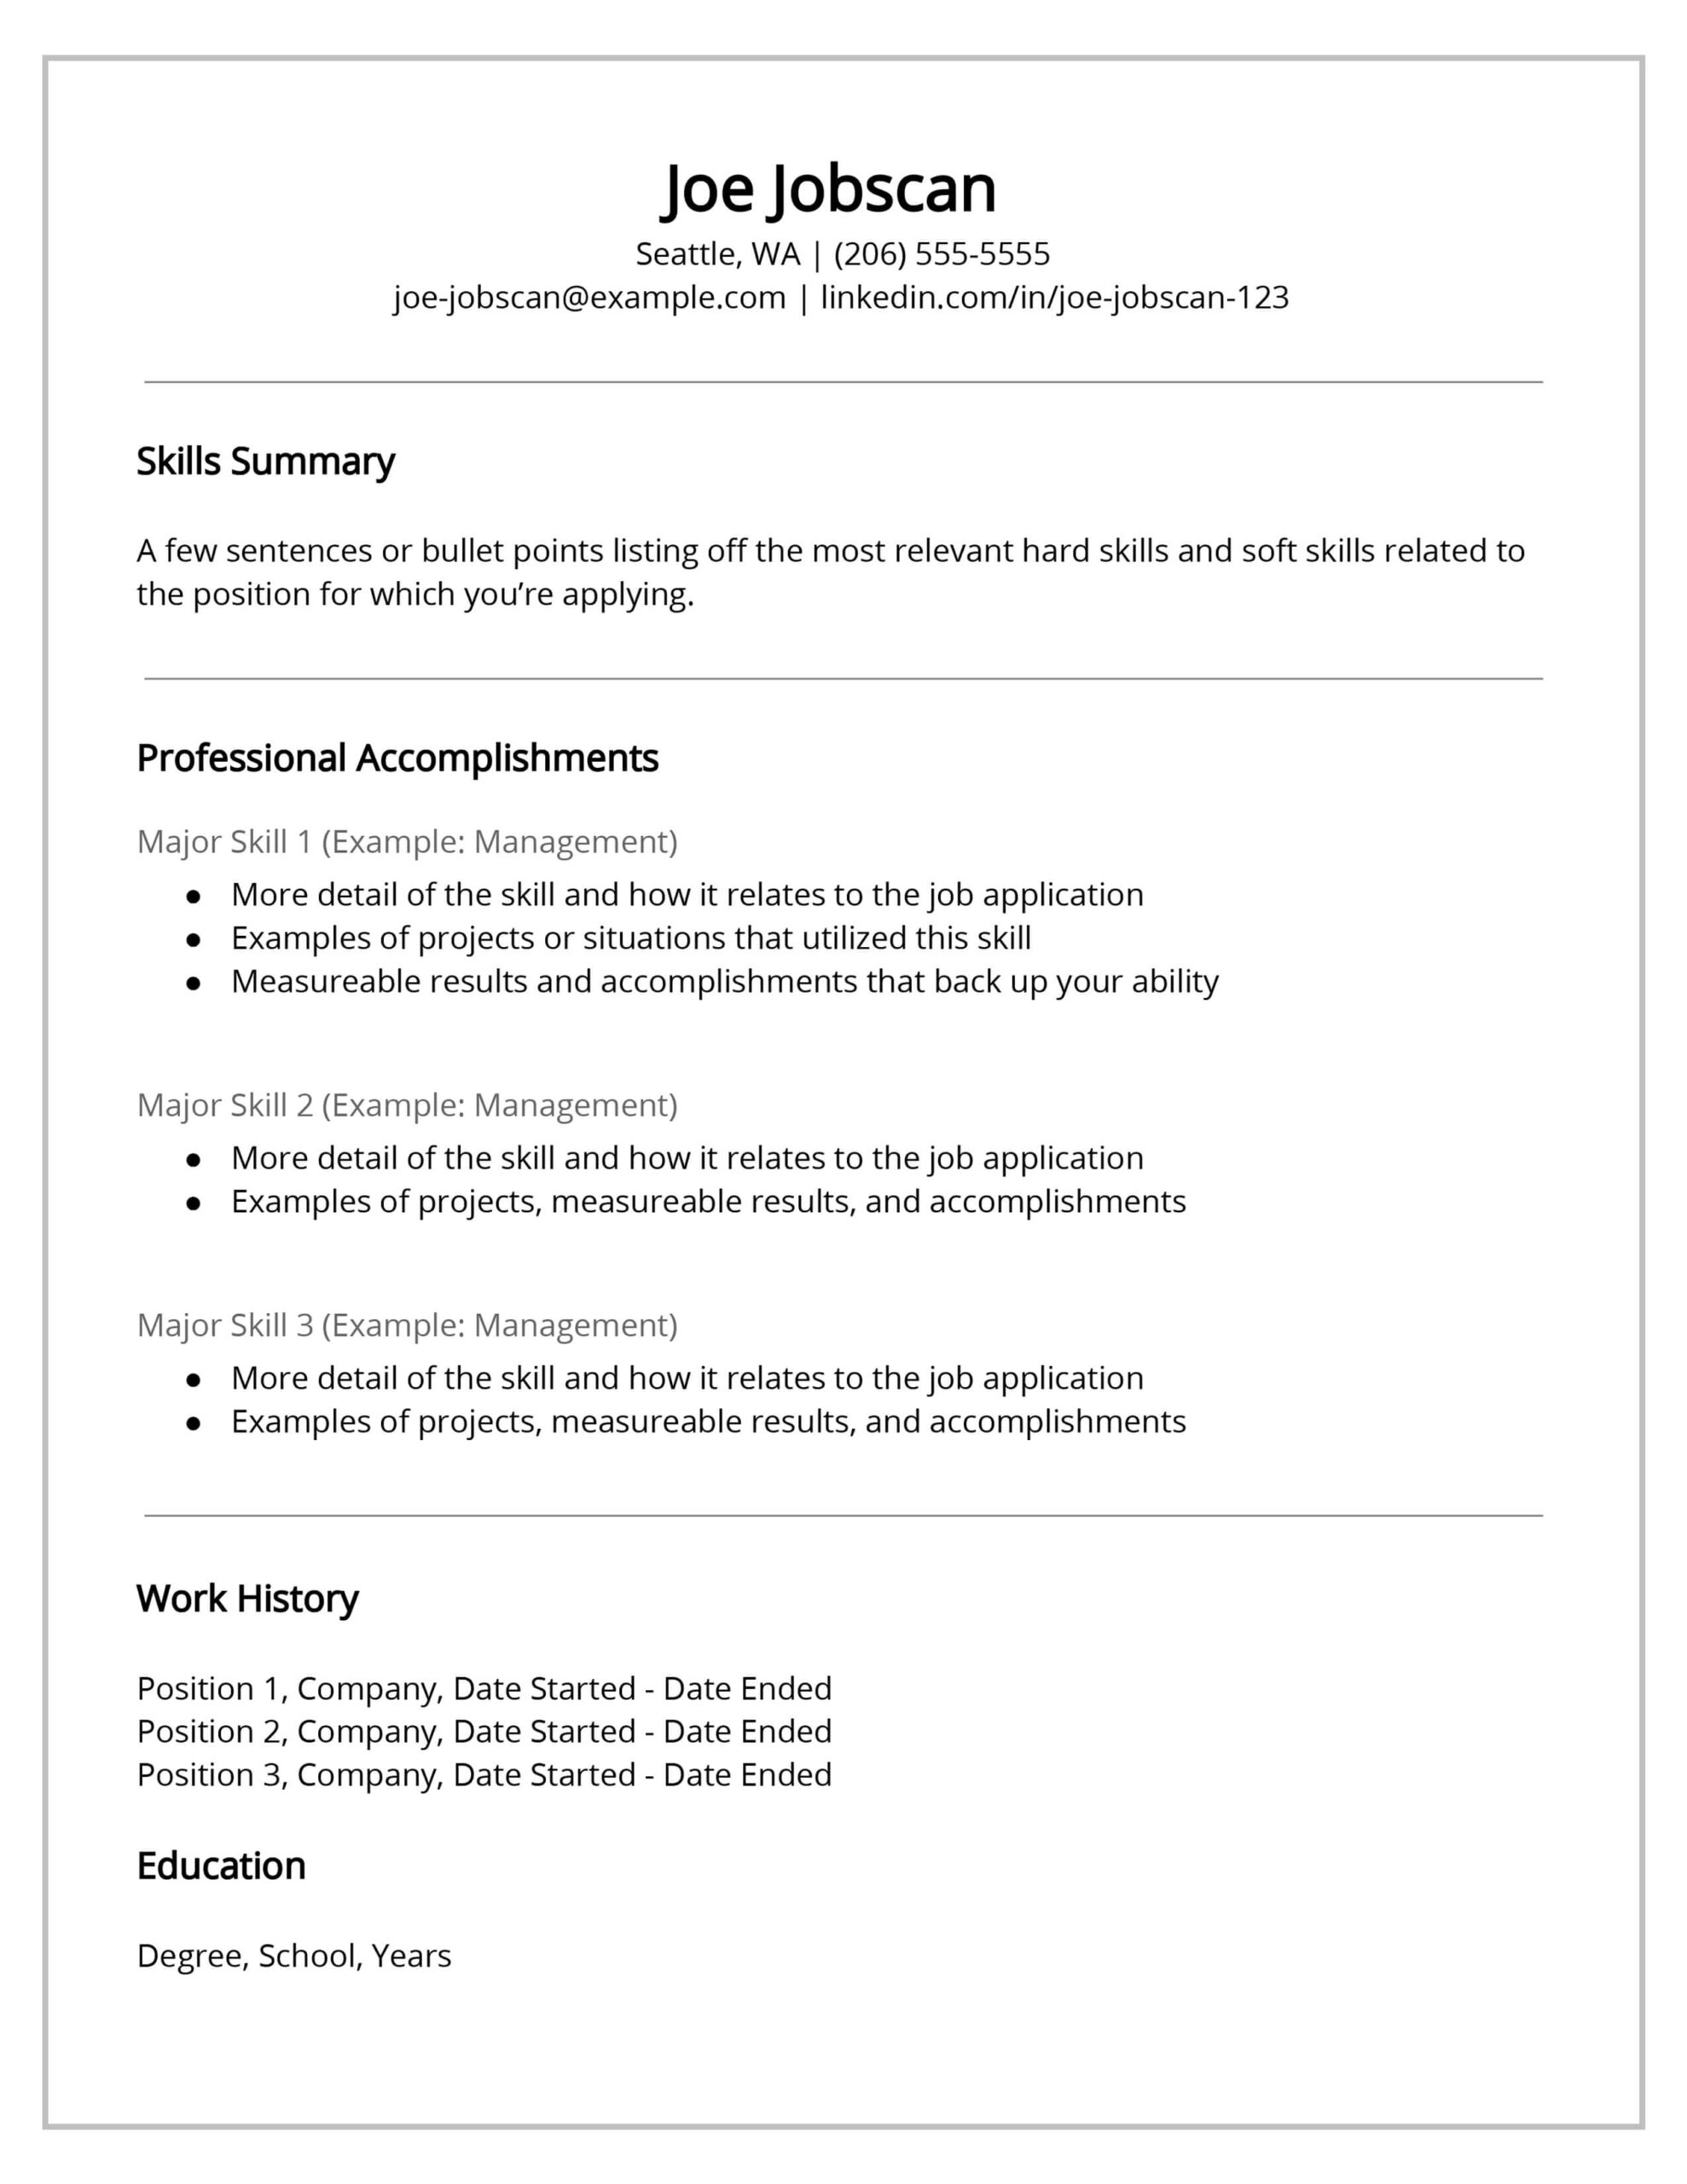 recruiters hate the functional resume format here sample template professional Resume Sample Functional Resume Template